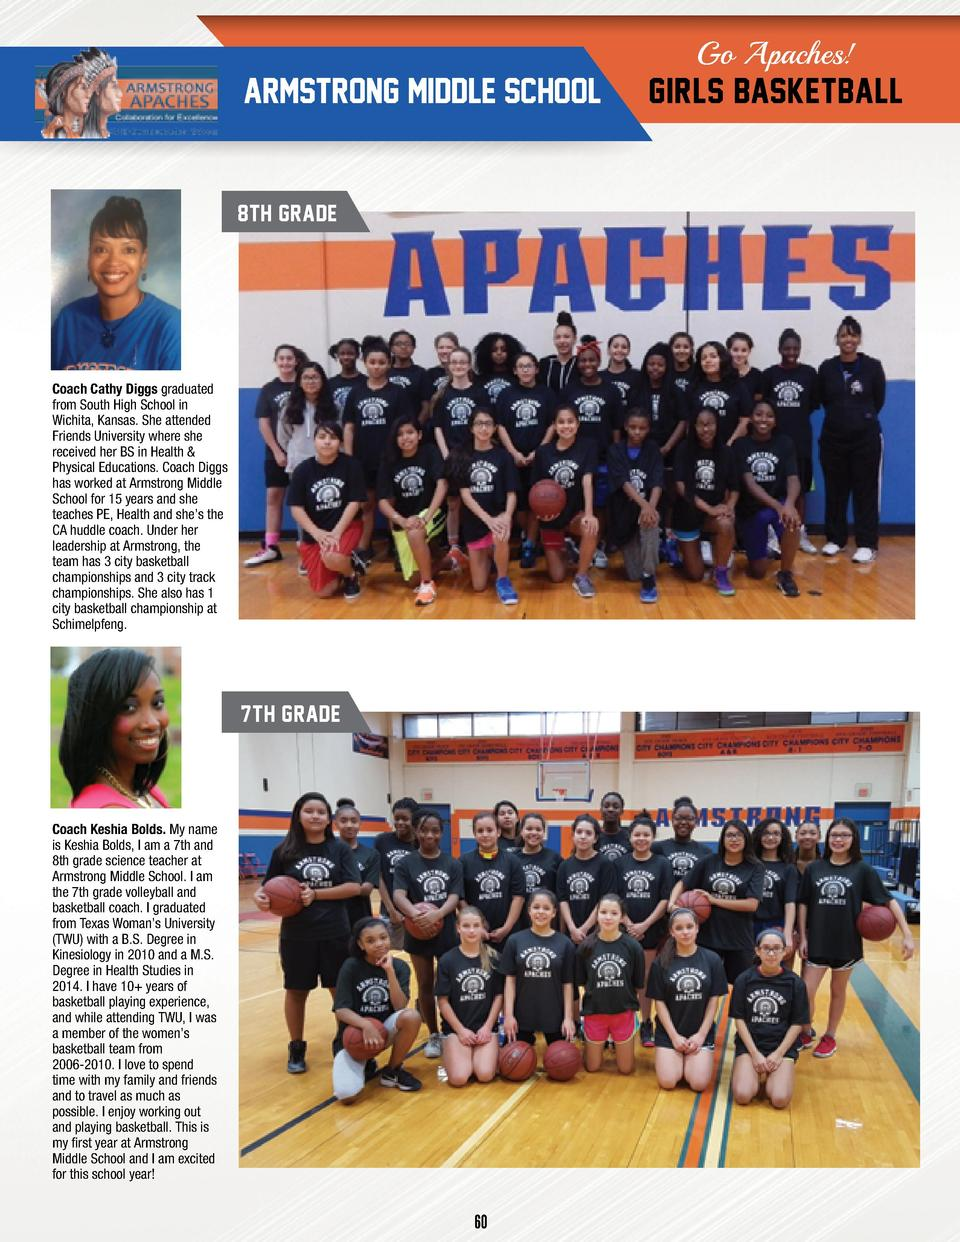 Go Apaches   ARMSTRONG MIDDLE SCHOOL  8TH GRADE  Coach Cathy Diggs graduated from South High School in Wichita, Kansas. Sh...